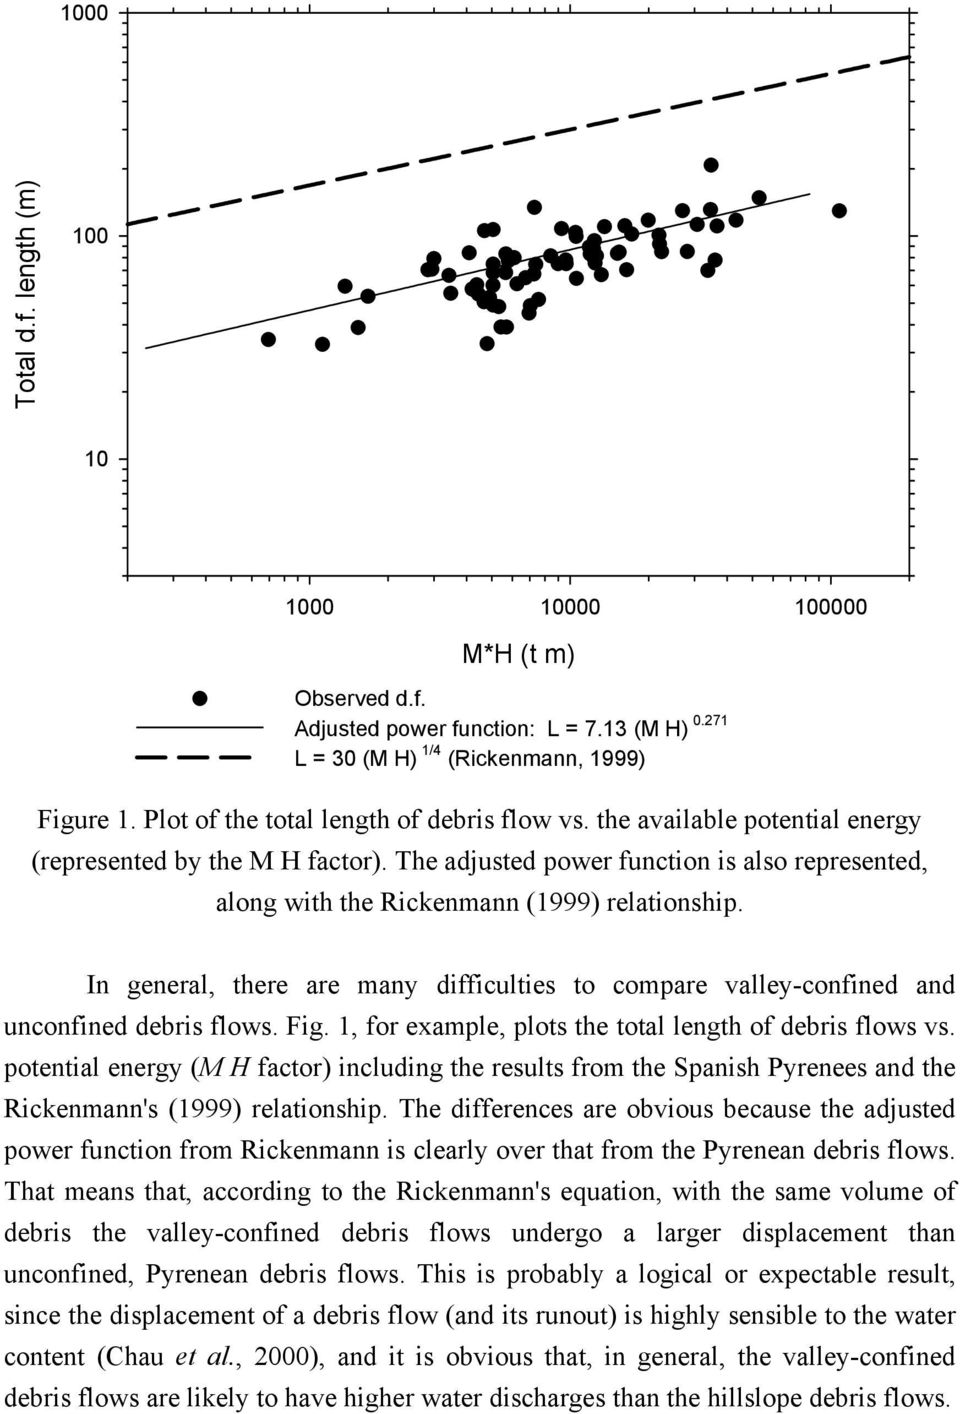 The adjusted power function is also represented, along with the Rickenmann (1999) relationship. In general, there are many difficulties to compare valley-confined and unconfined debris flows. Fig.